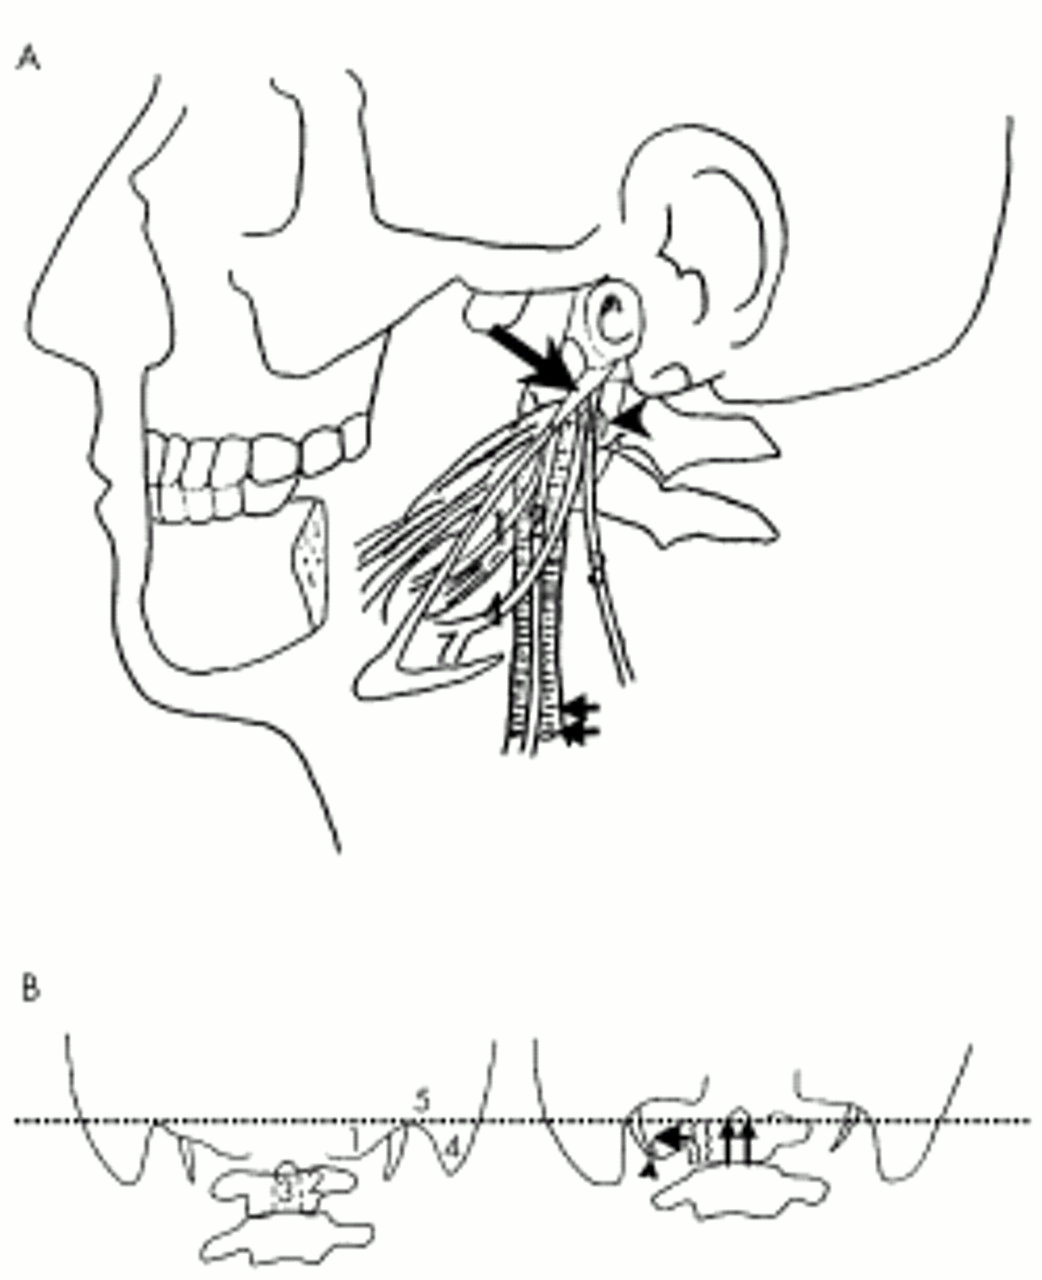 A Case Of Collet Sicard Syndrome Associated With Traumatic Atlas